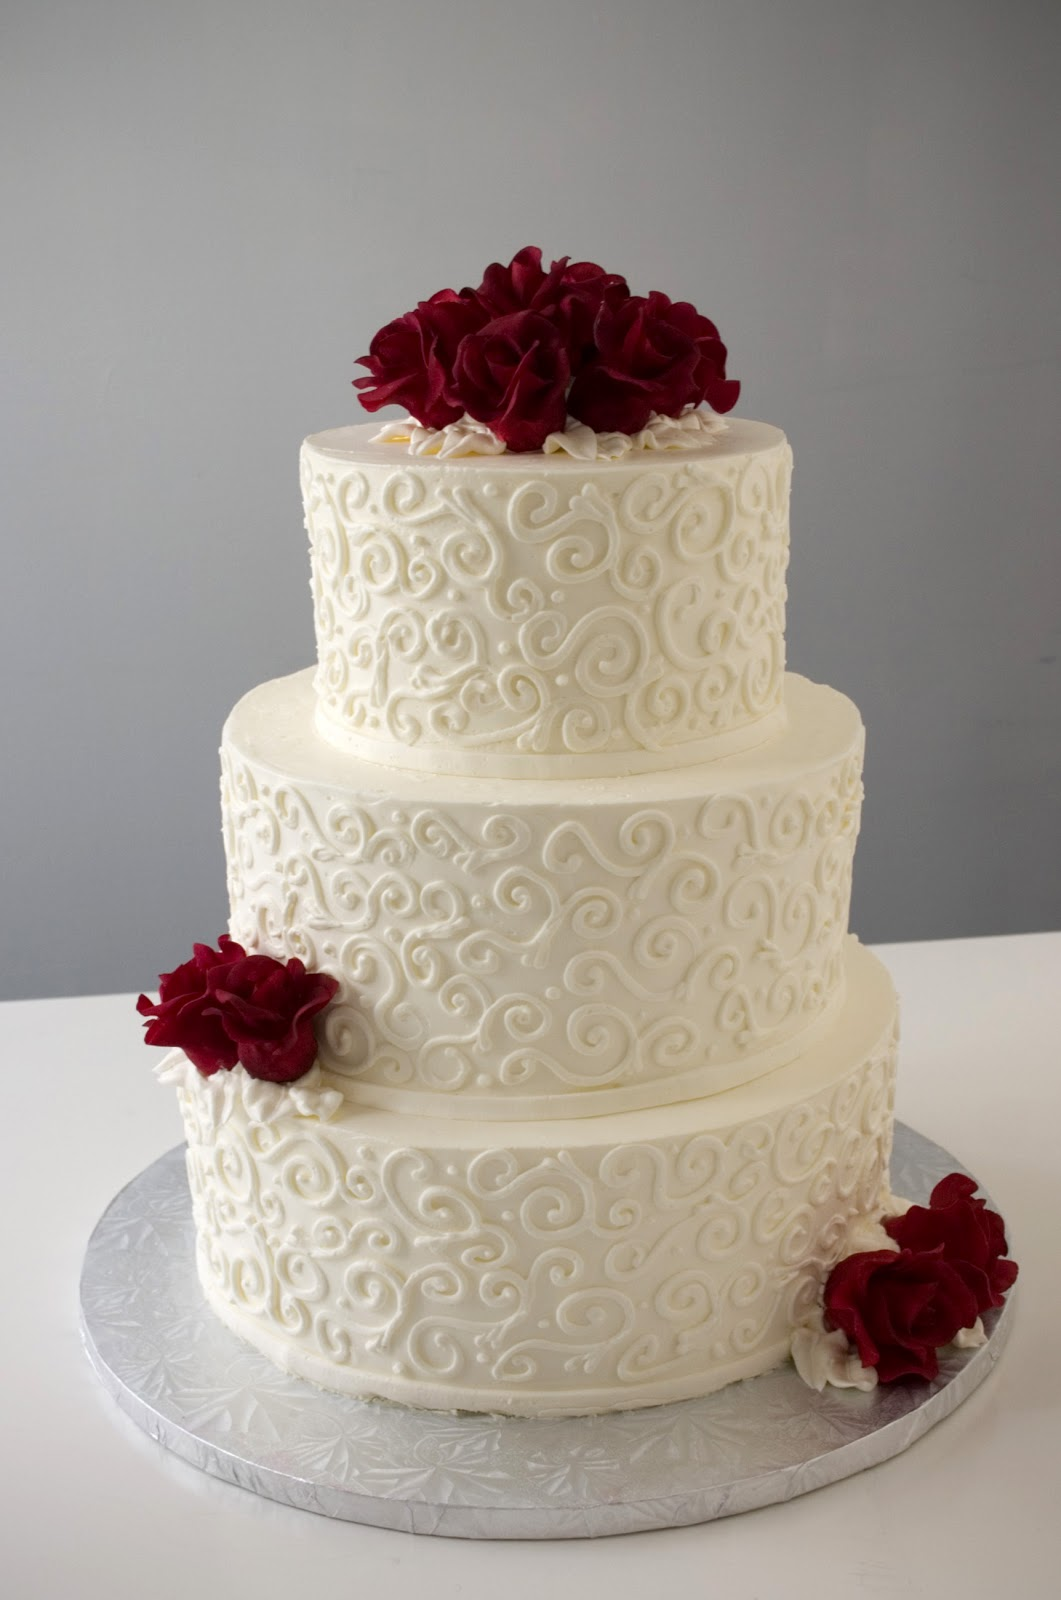 A Simple Cake Inspiration Gallery